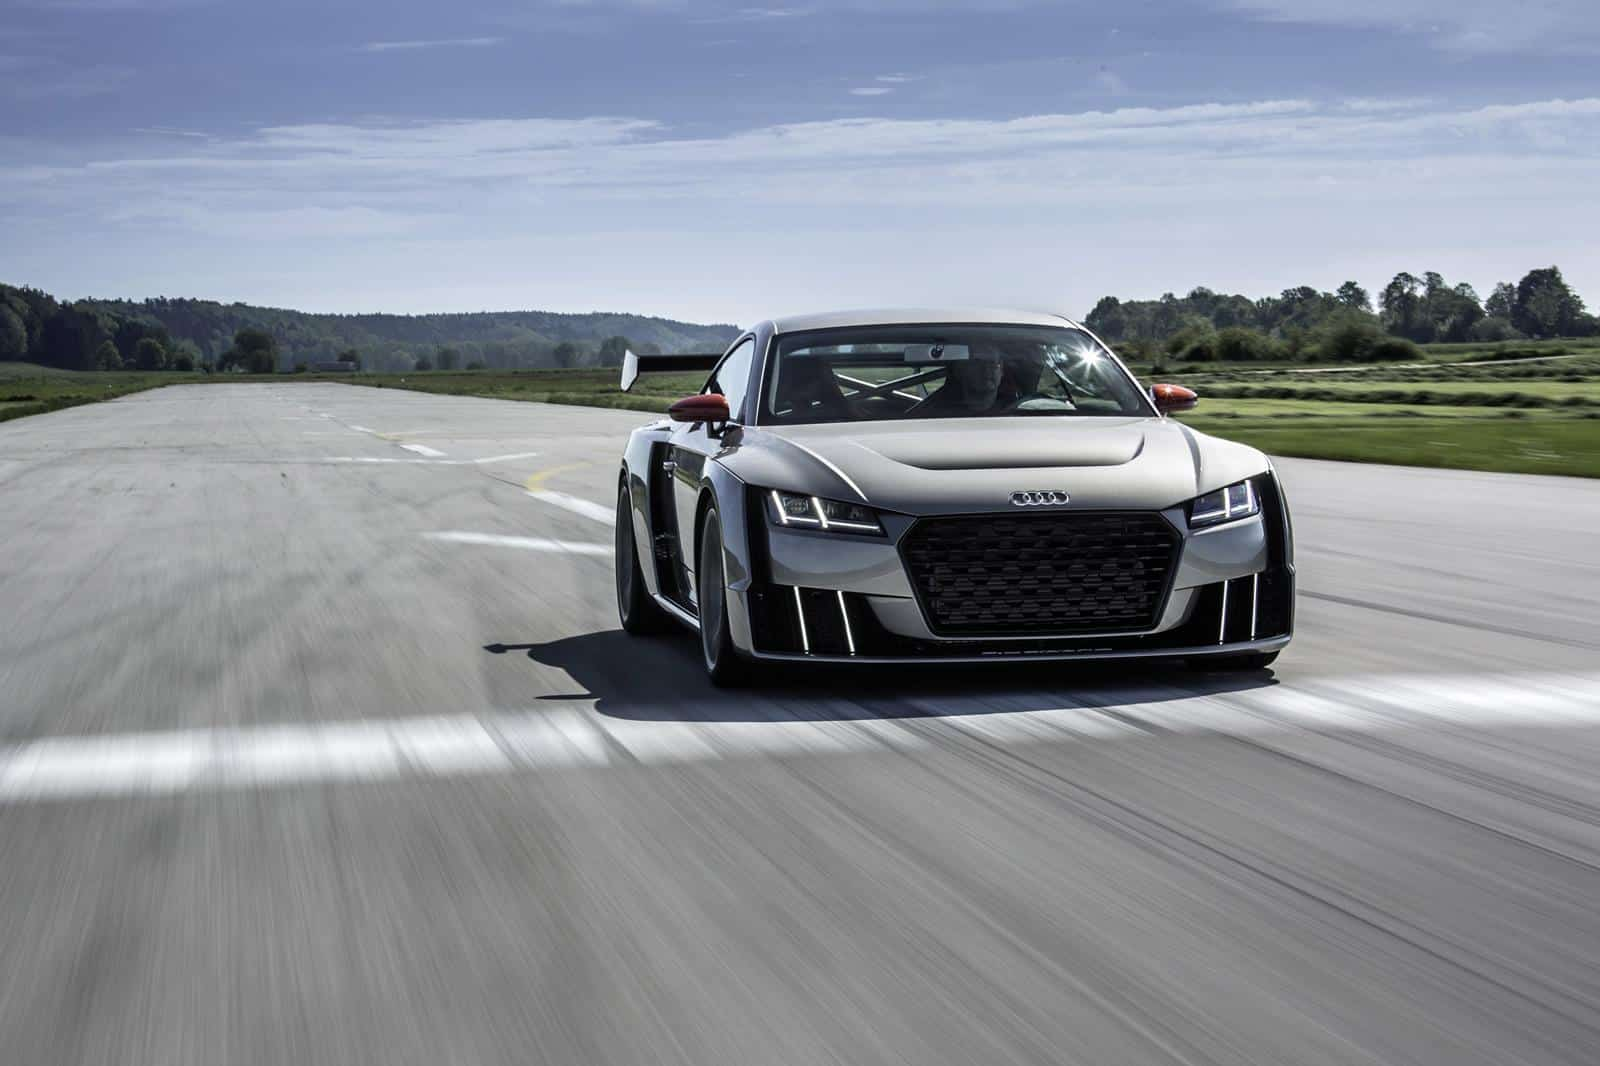 audi-tt-clubsport-25-liter-tfsi-with-electric-turbo-revealed-in-first-official-video_12